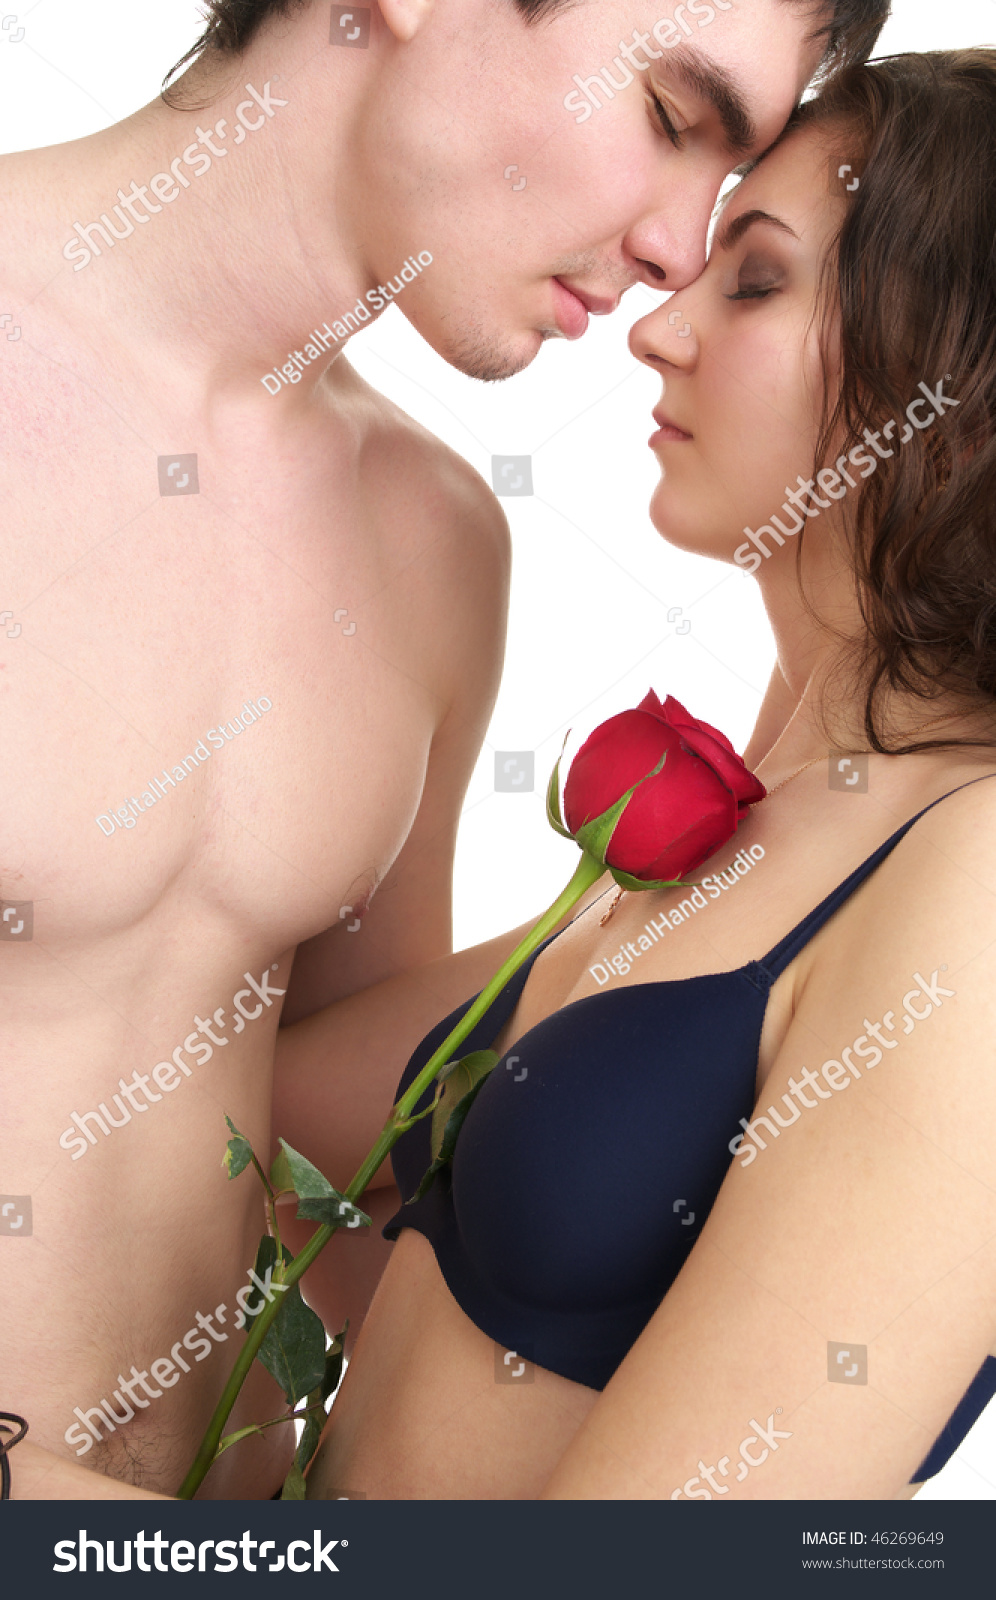 Naked Couple Sex